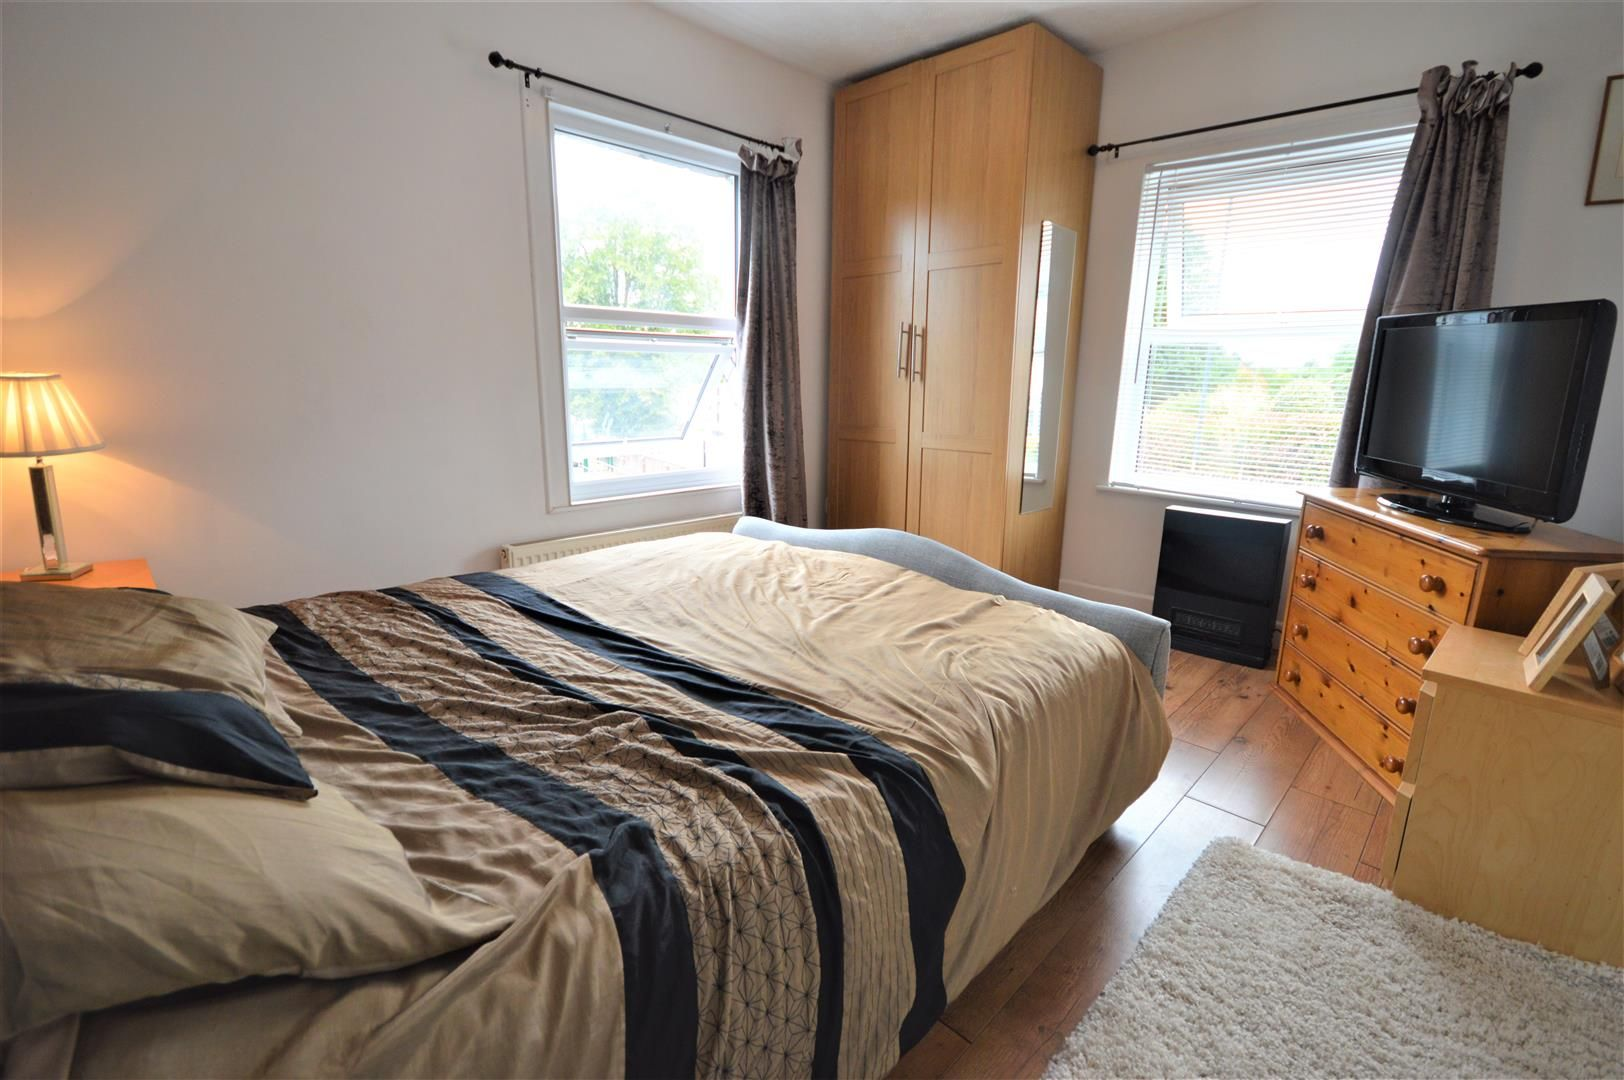 1 bed semi-detached for sale in Leominster 6